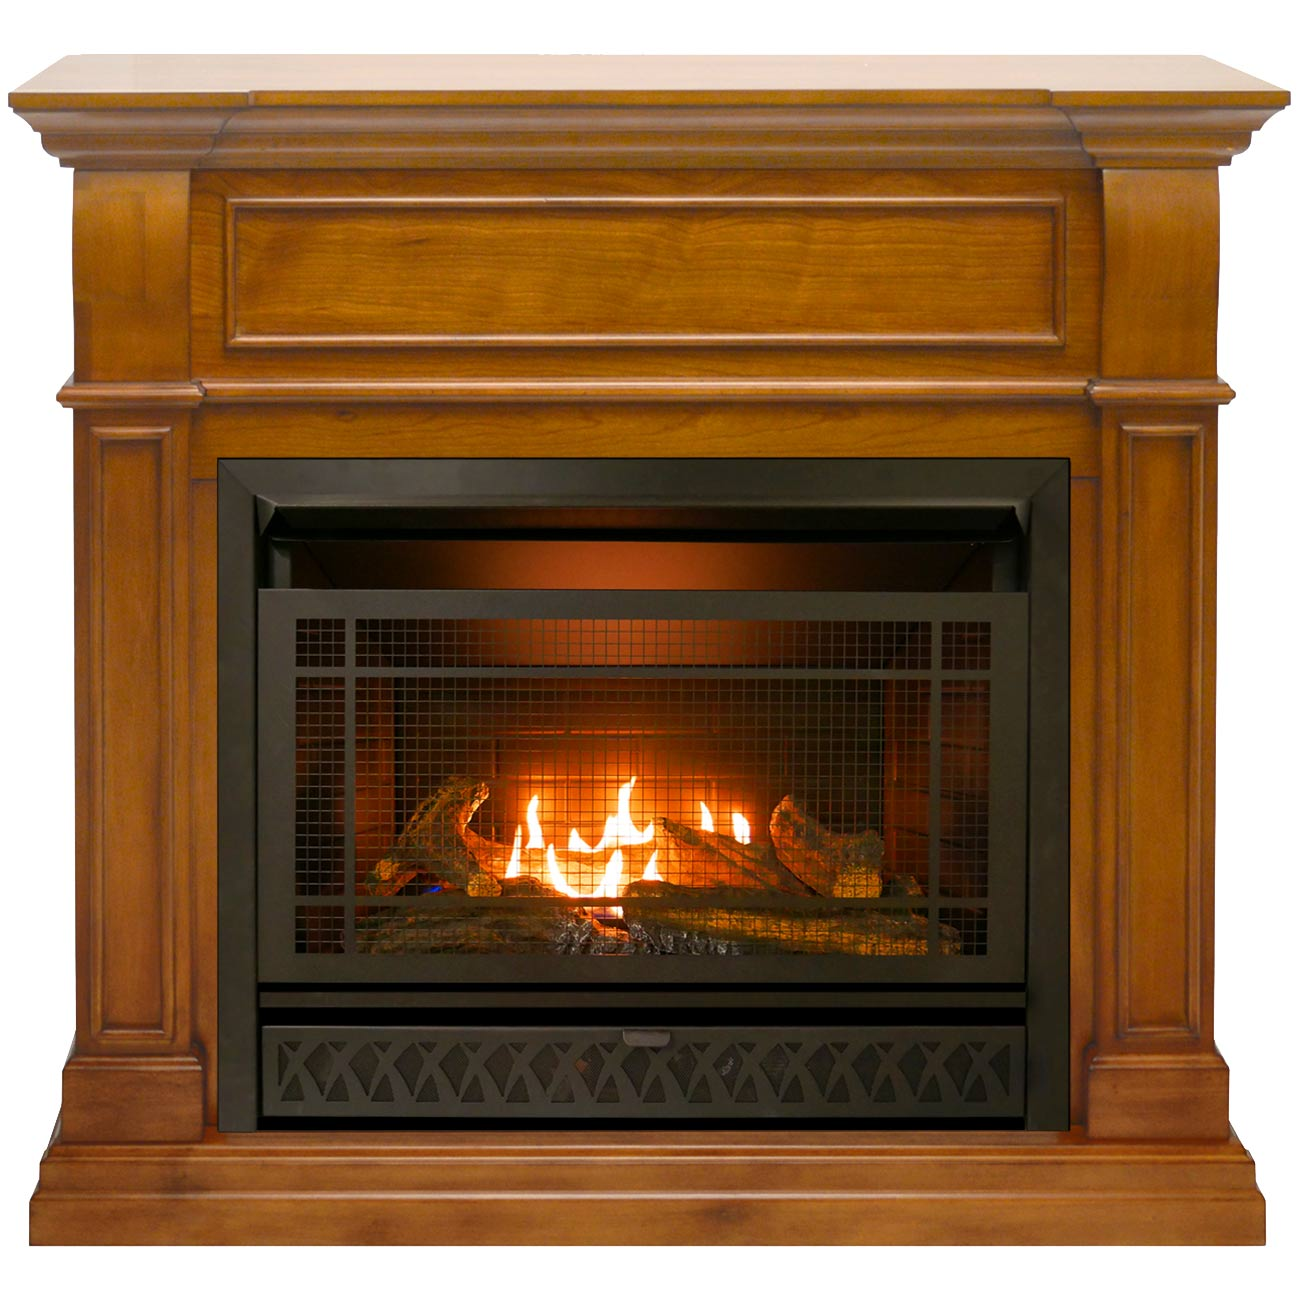 Procom ventless fireplace dual fuel fireplace 26000 btus ventless procom fbnsd28t j as picture procom heating teraionfo